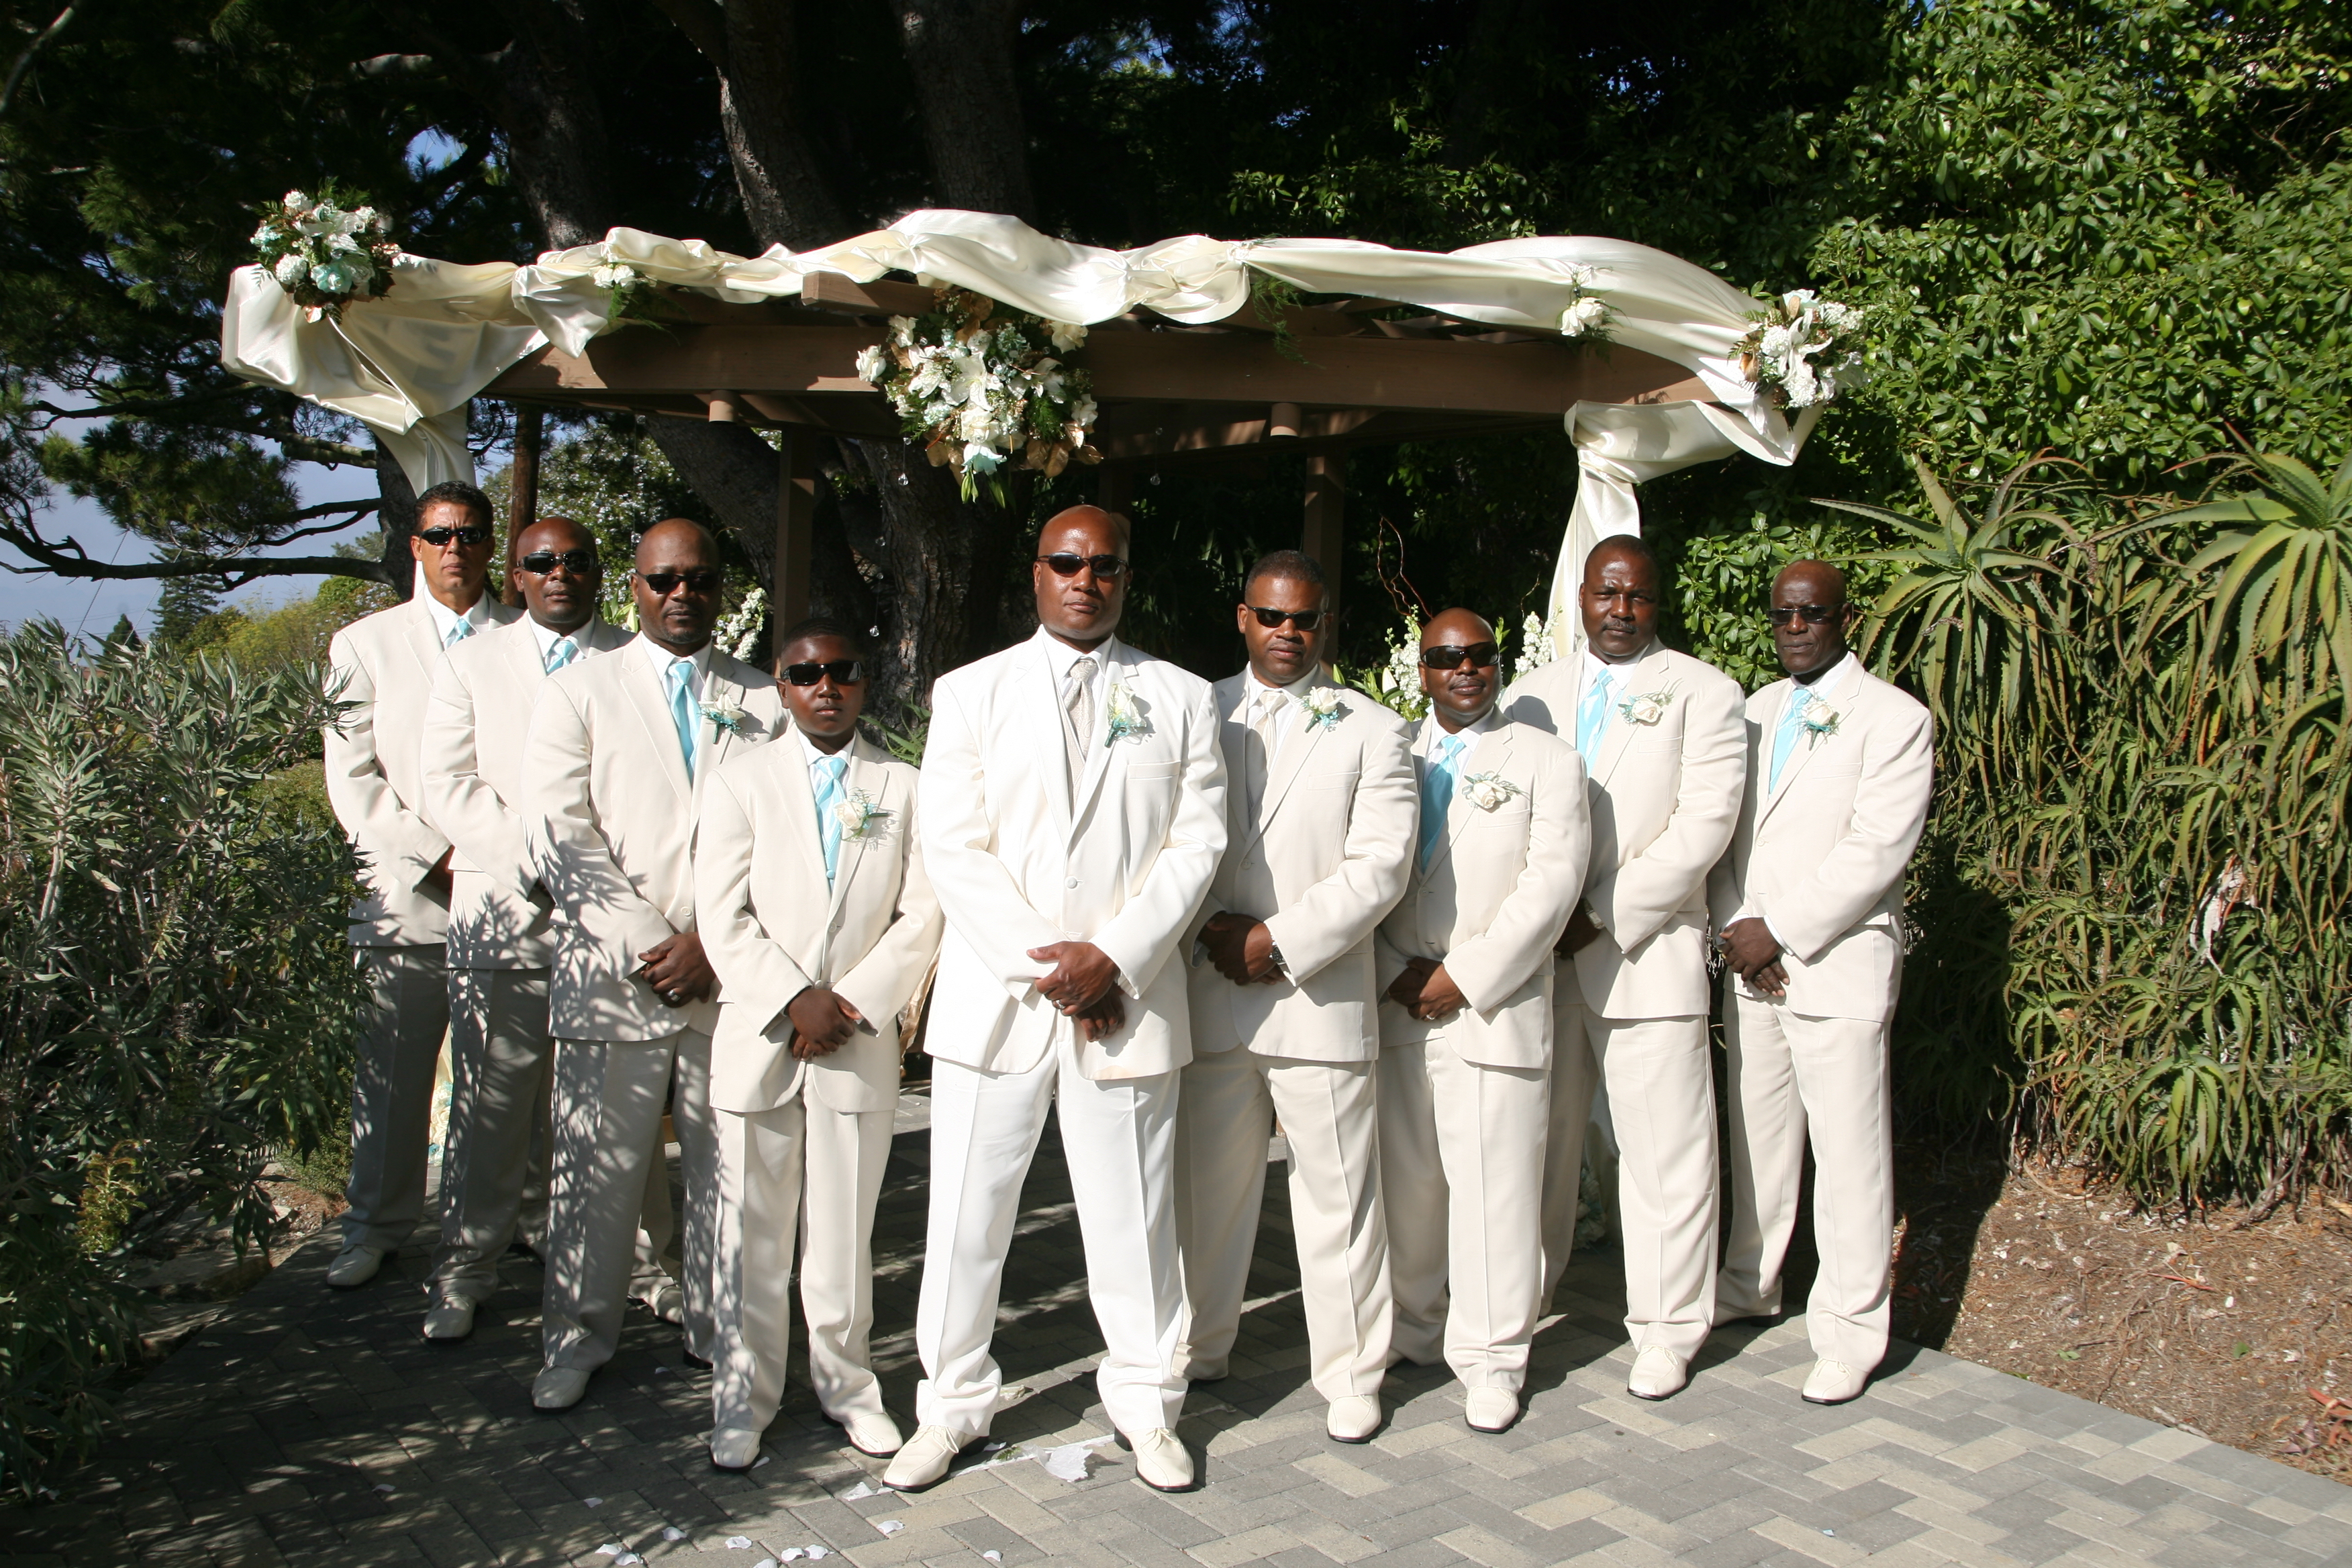 Ceremony, Flowers & Decor, Groomsmen, Groom, The, Inspiration board